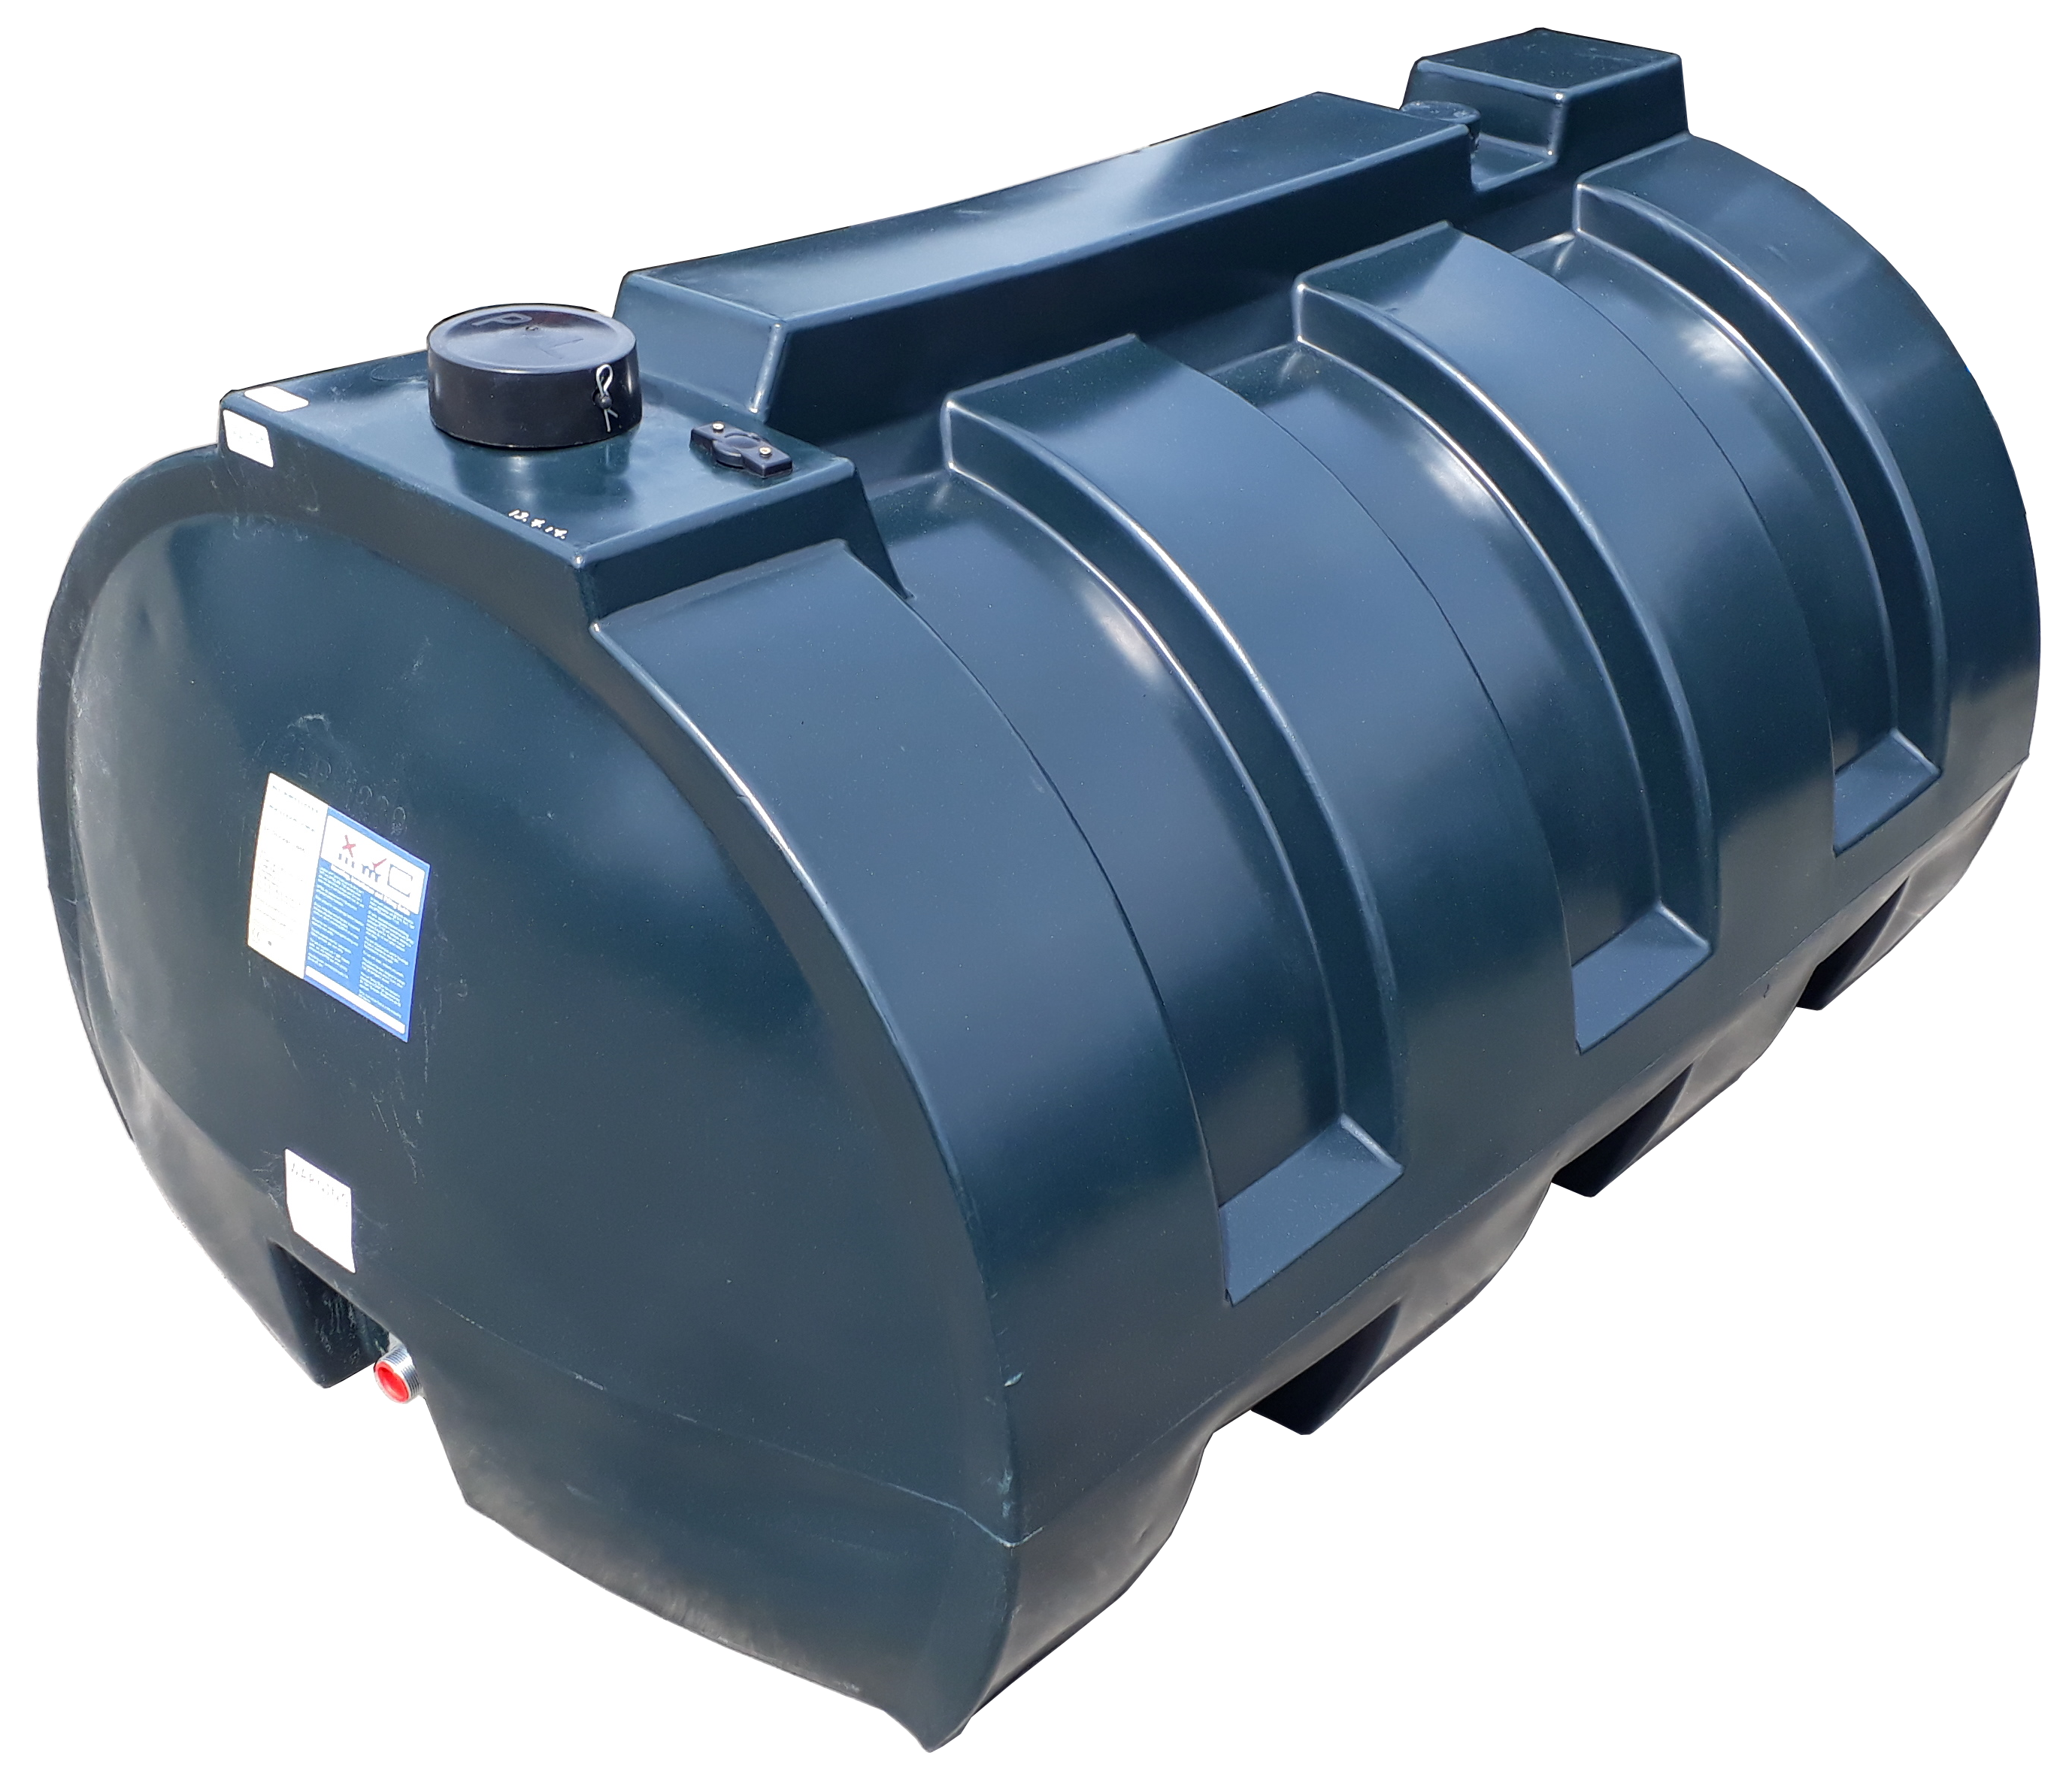 1230 Litre Low Profile Oil Tank Image